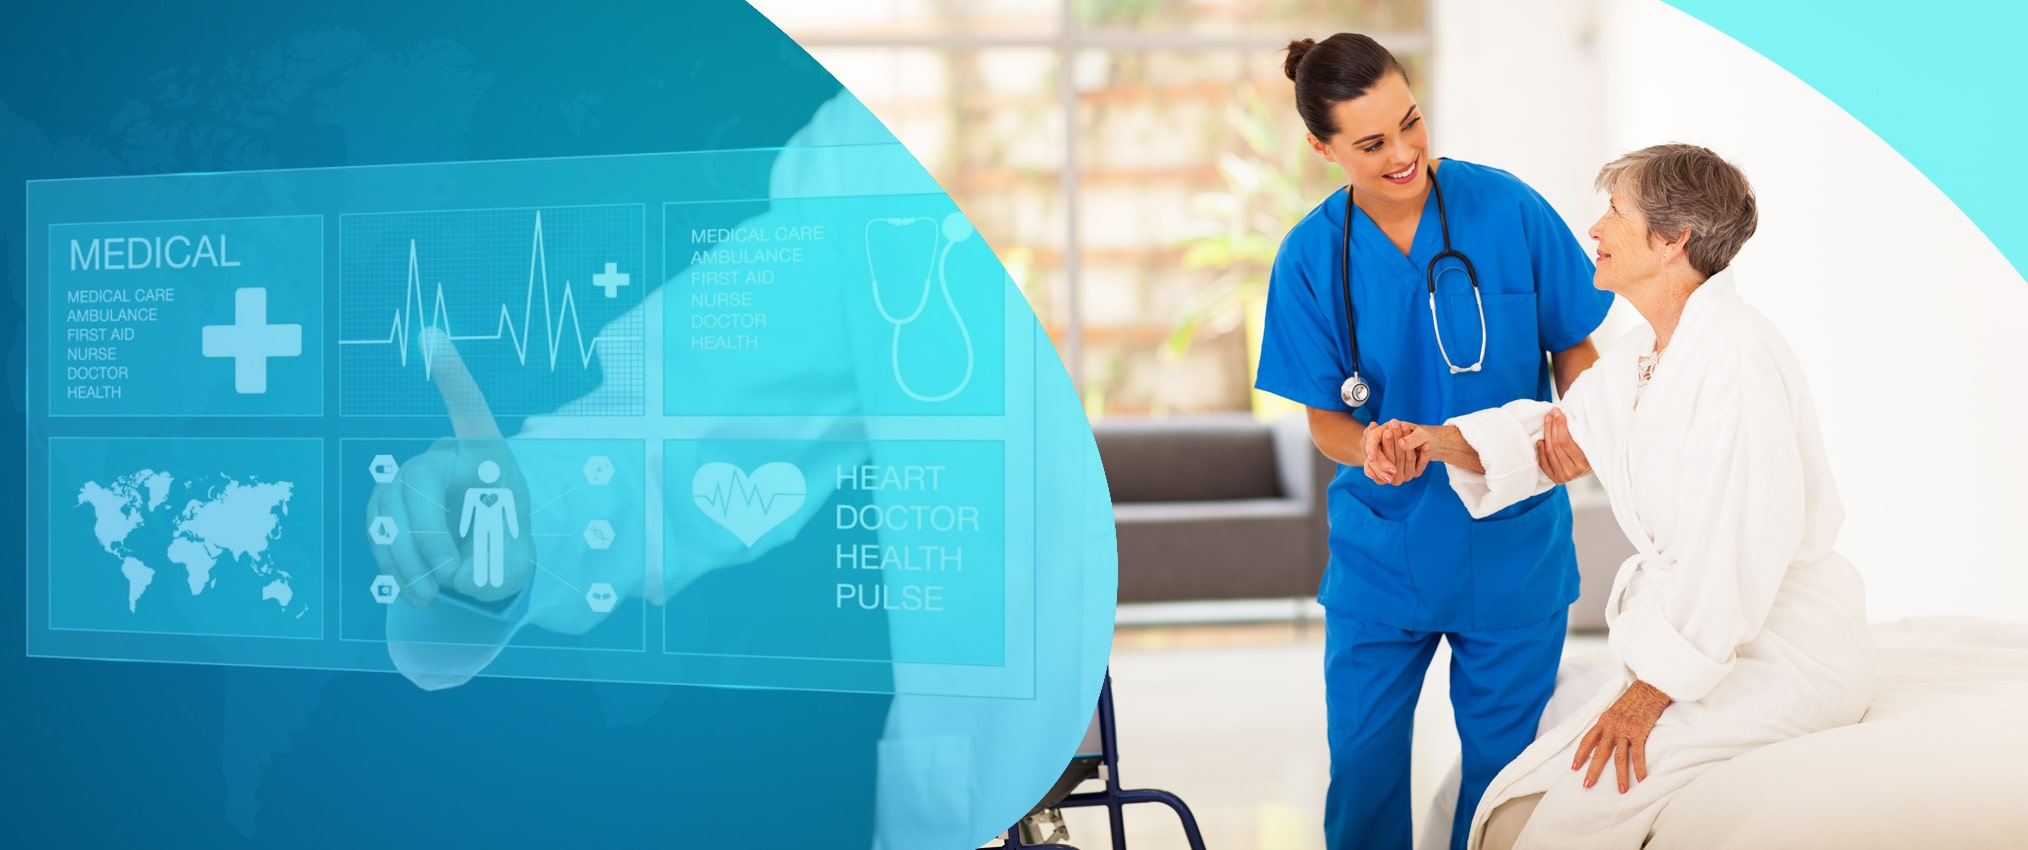 healthcare analytics for patient_s care